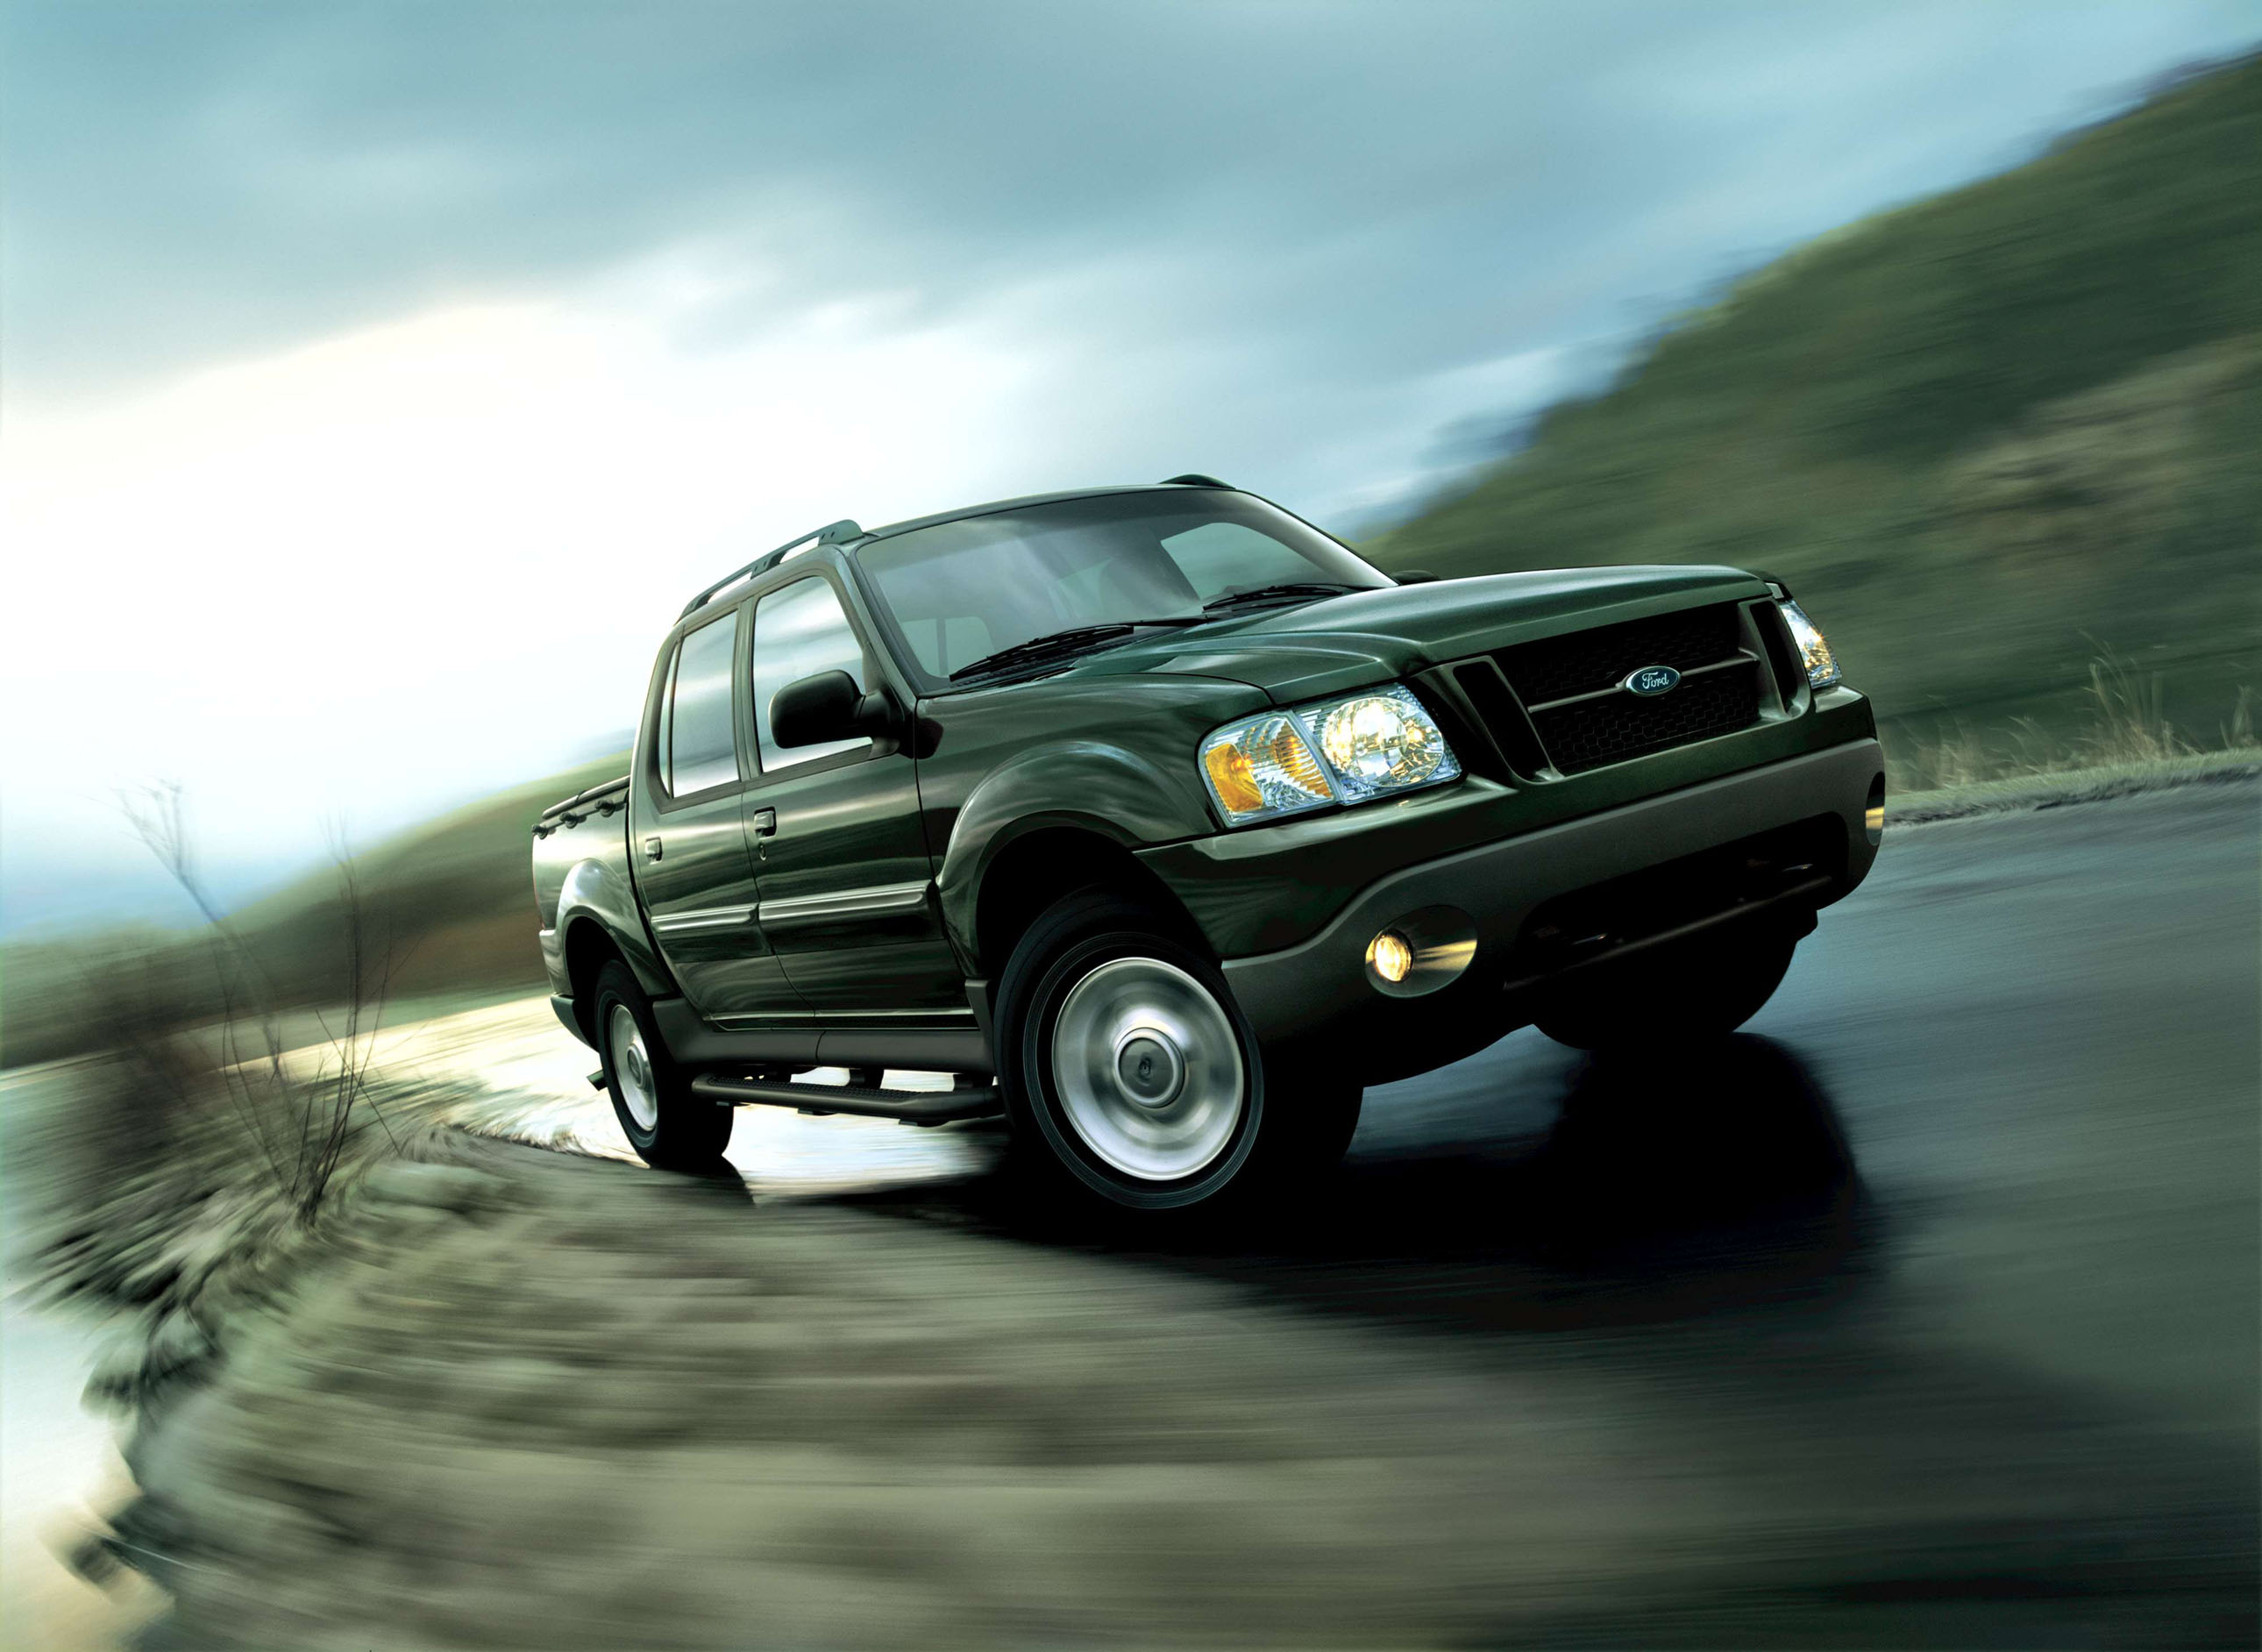 concept wallpaper trac of angle ford sport htm explorer picture front